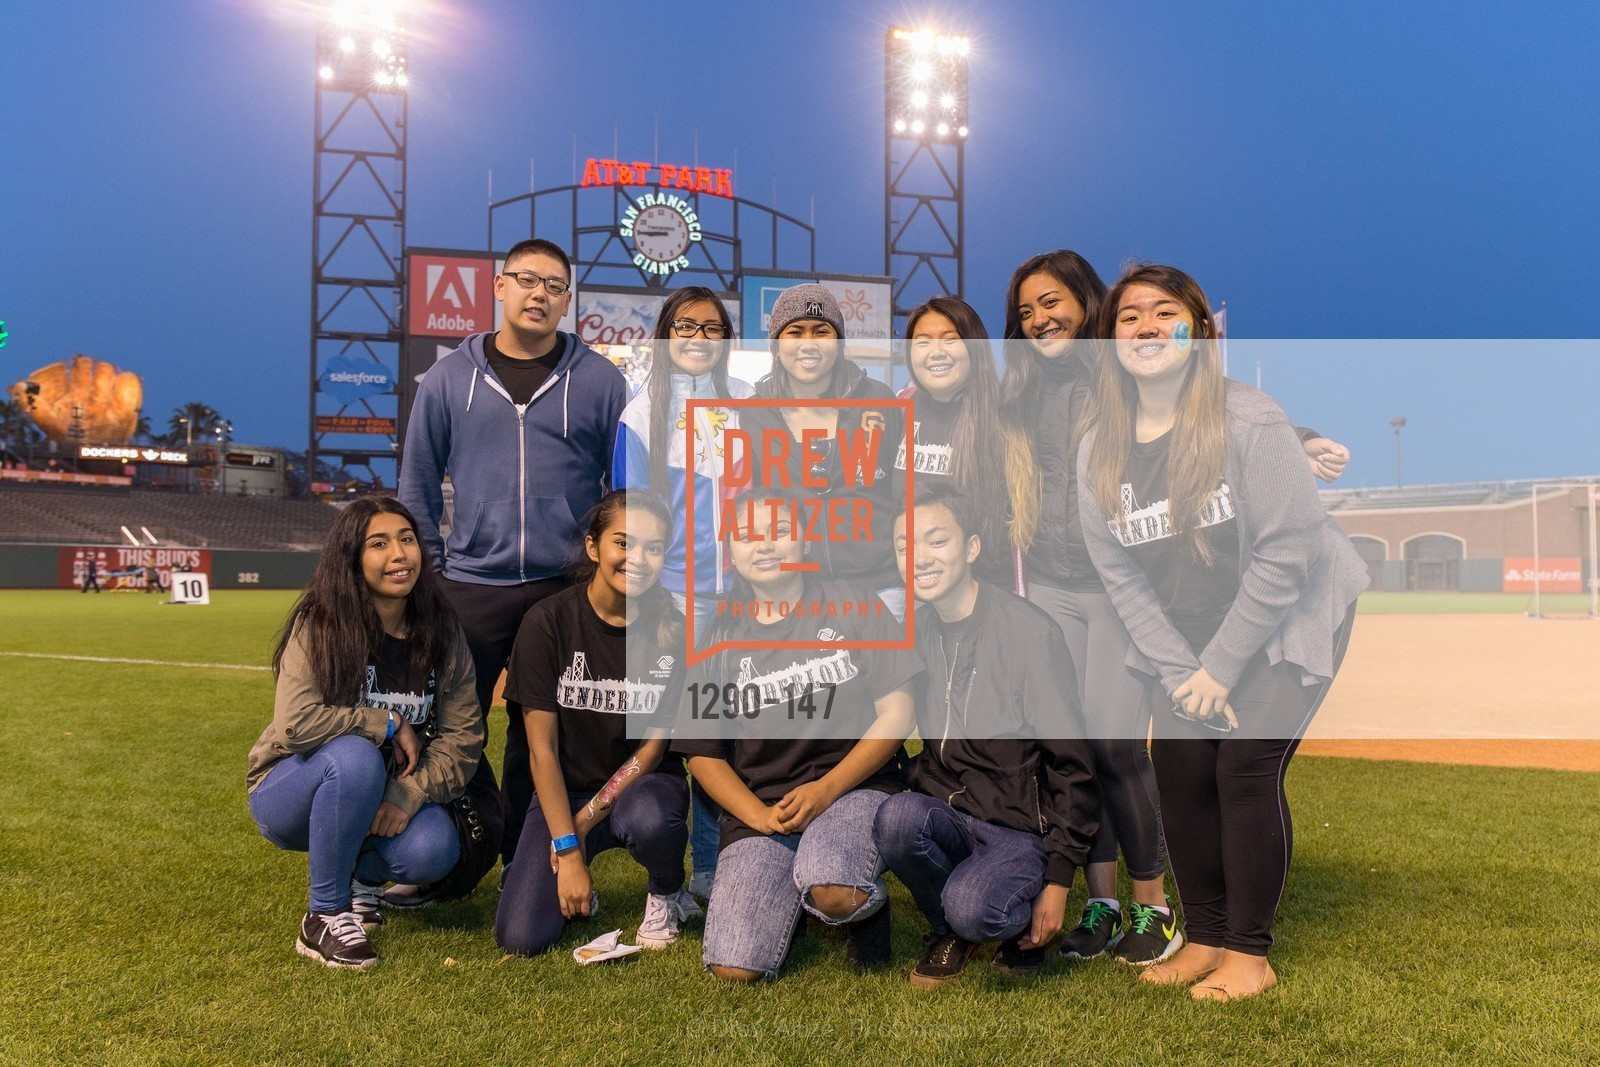 Boy And Girls Club of Tenderloin District, The Saint Francis Foundation's